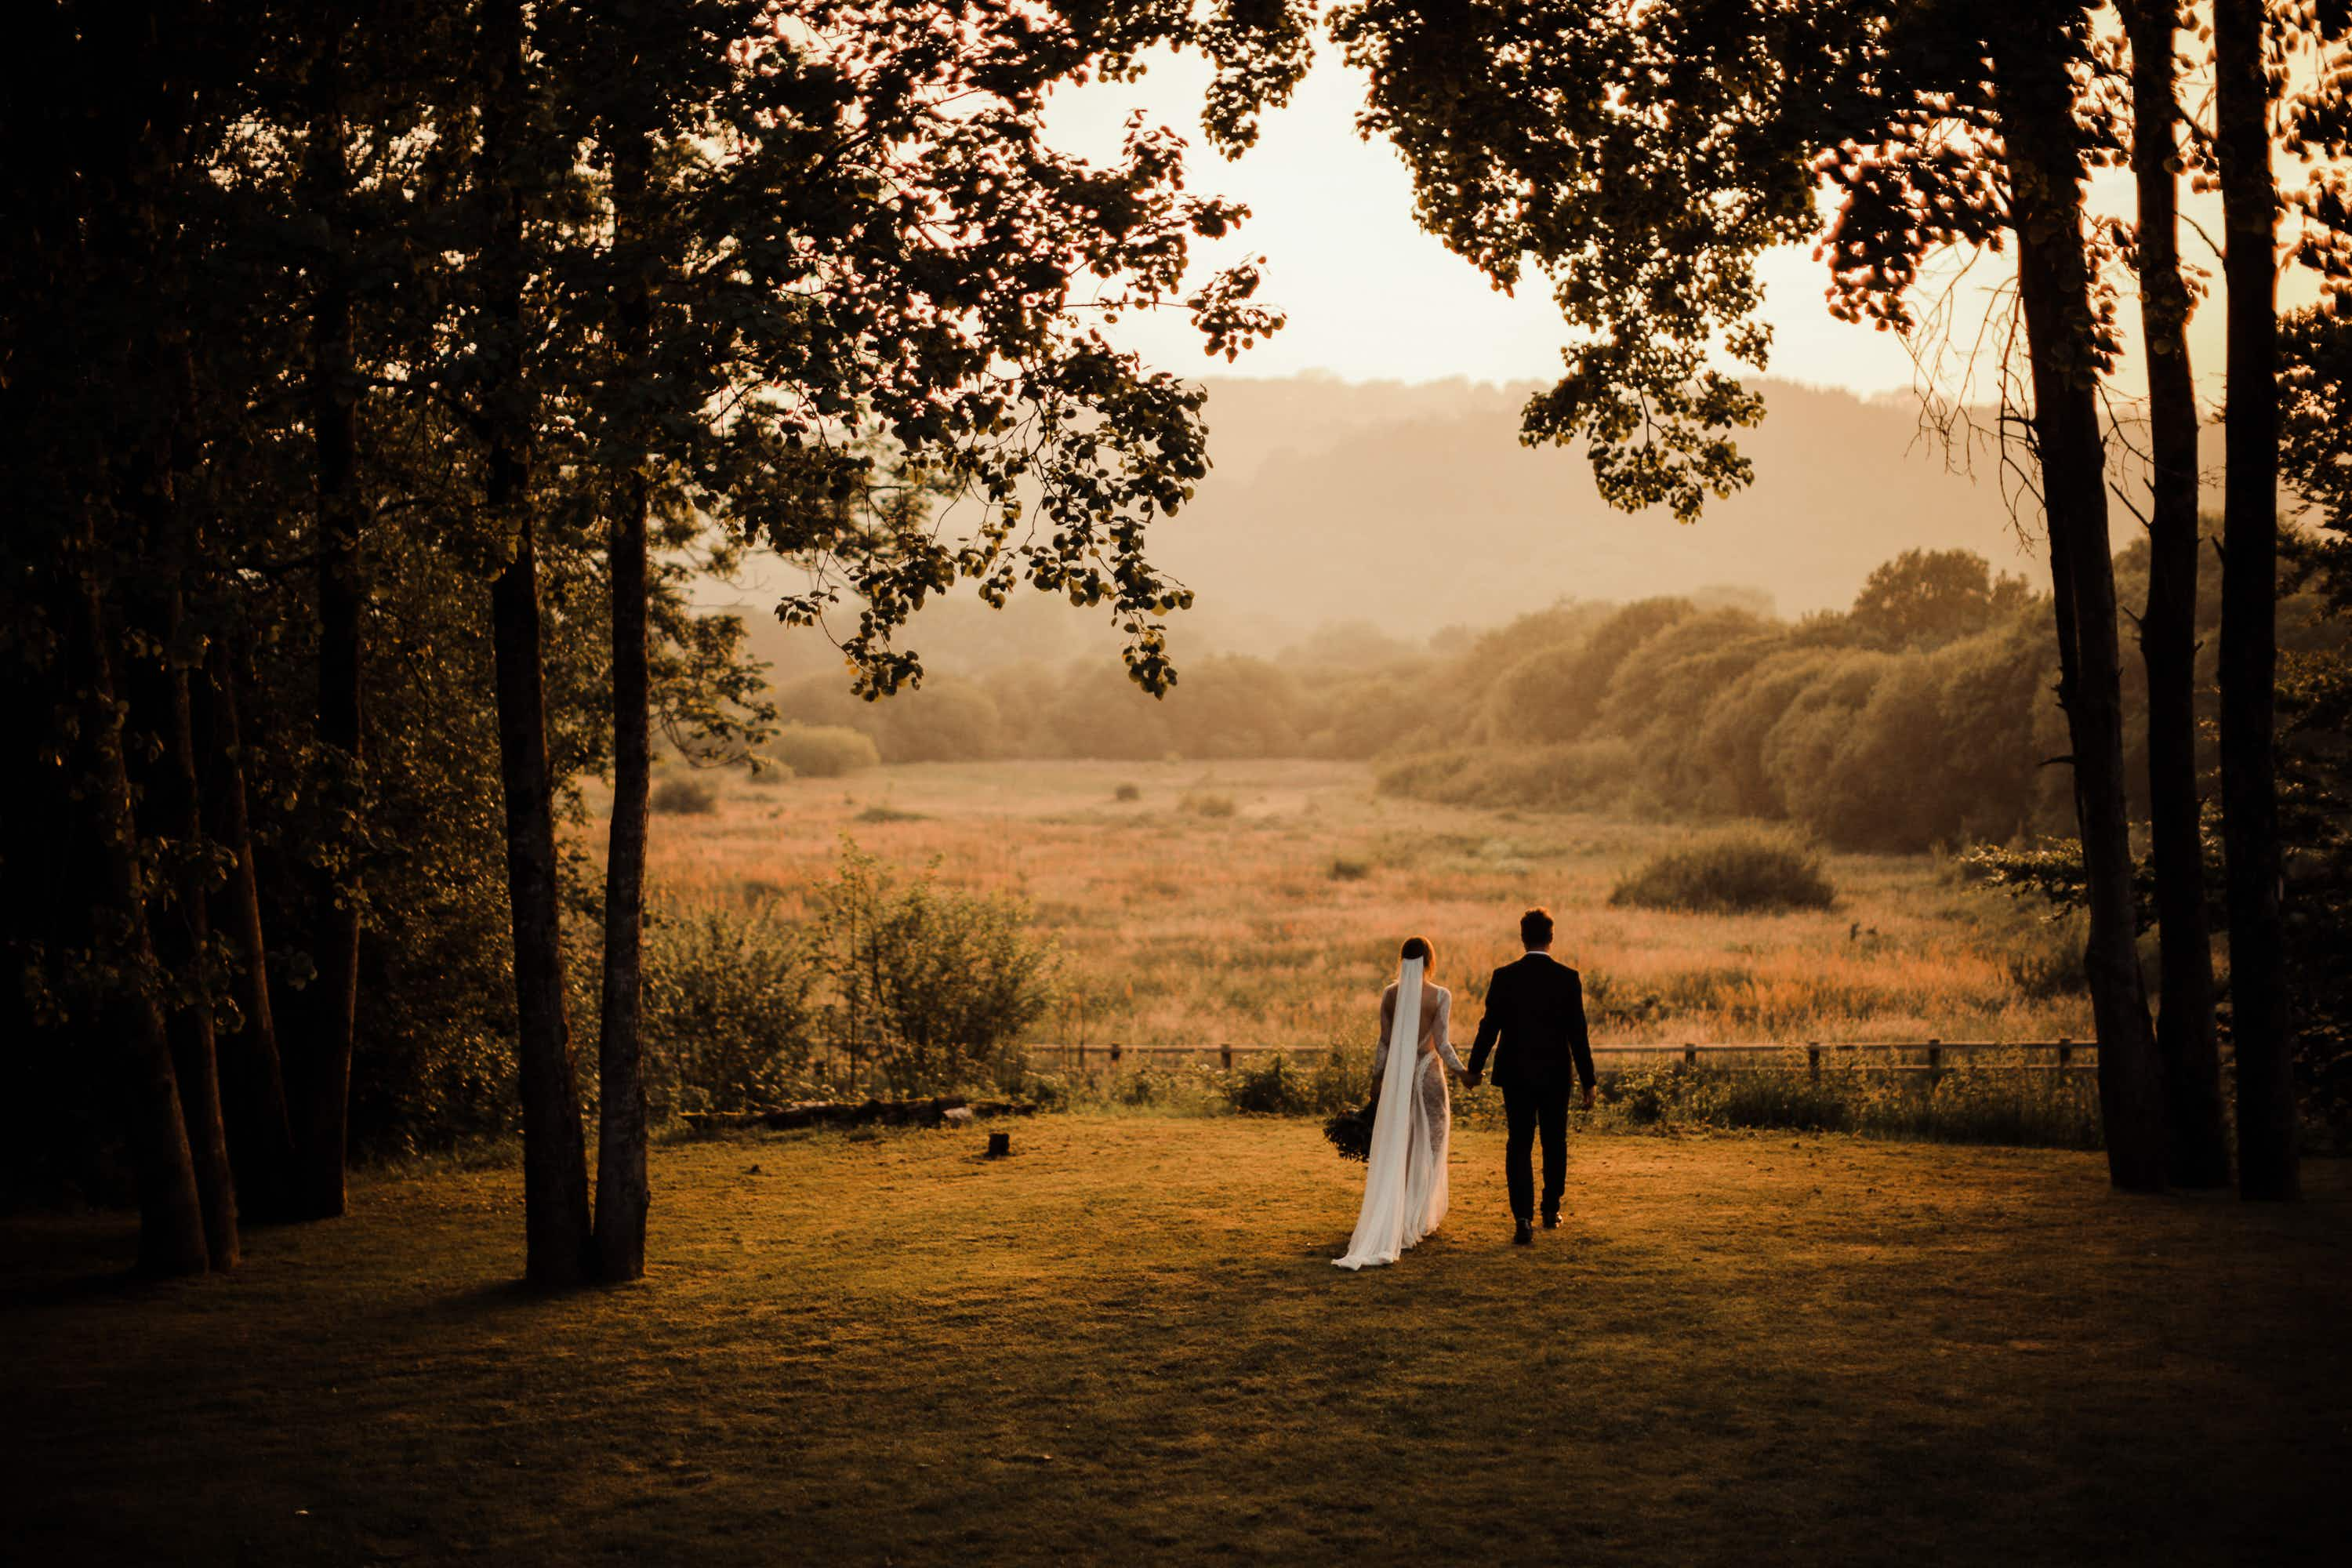 Wild weddings: where to get married outdoors in the UK